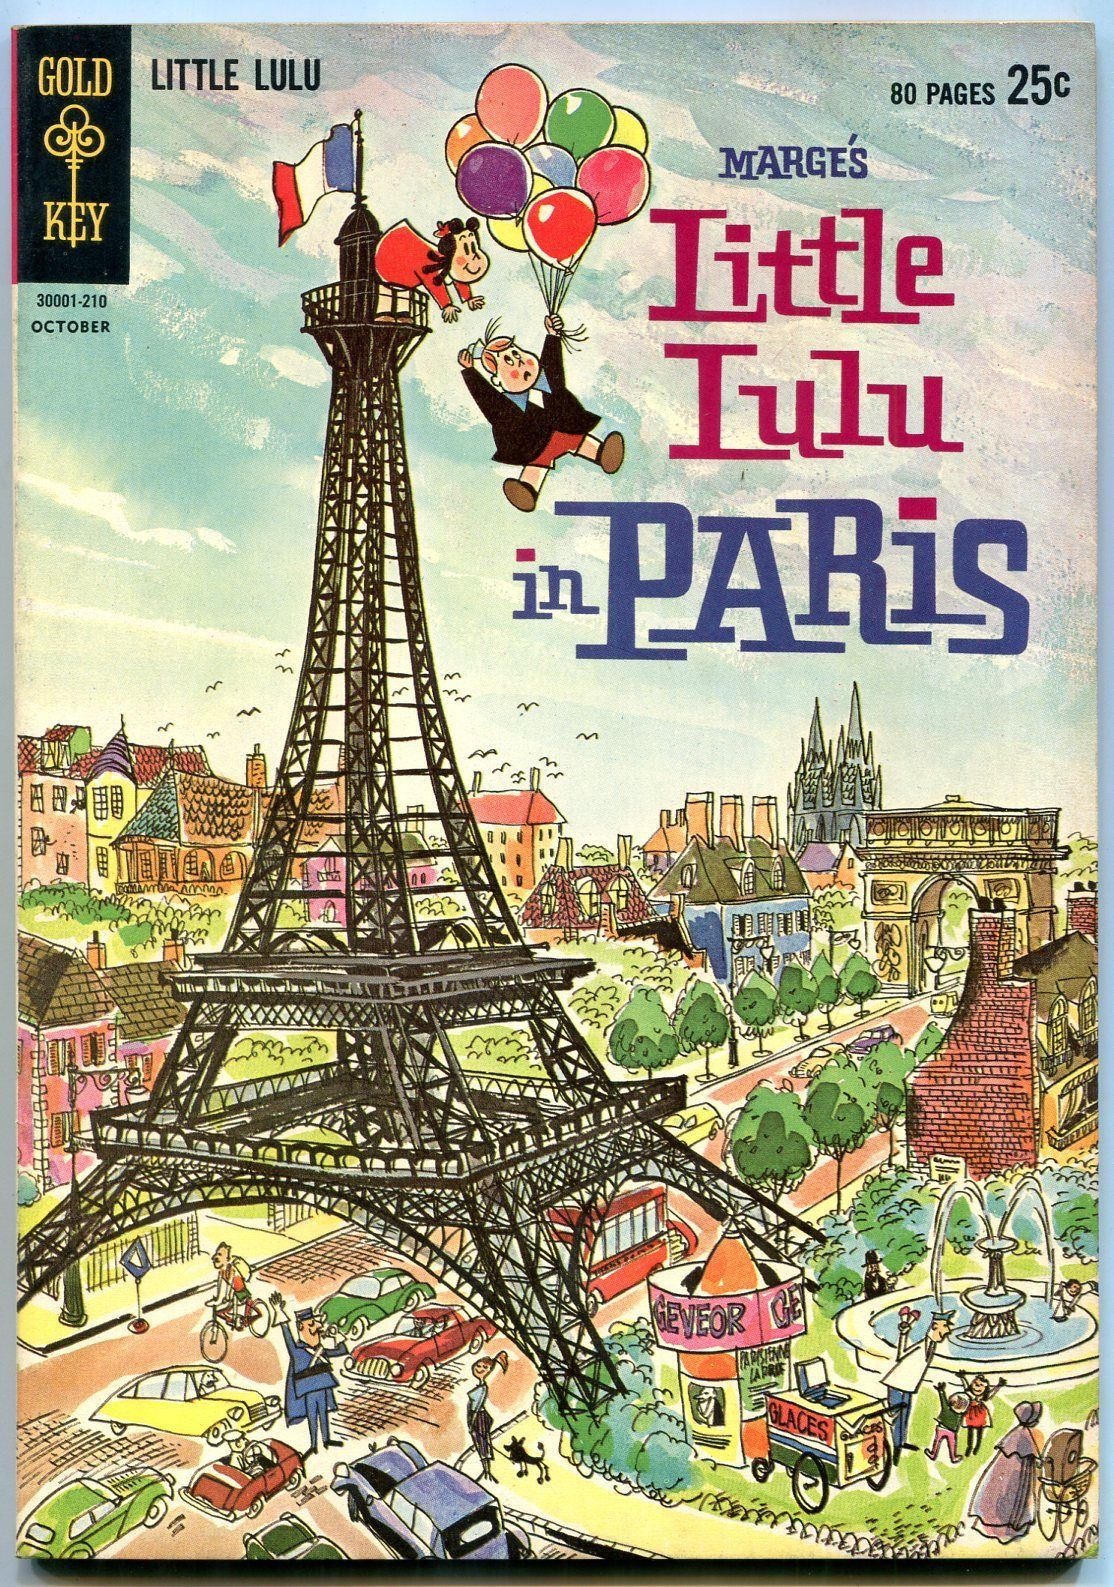 MARGE'S LITTLE LULU #165 1962-GOLD KEY-IN PARIS-GIANT VF/NM